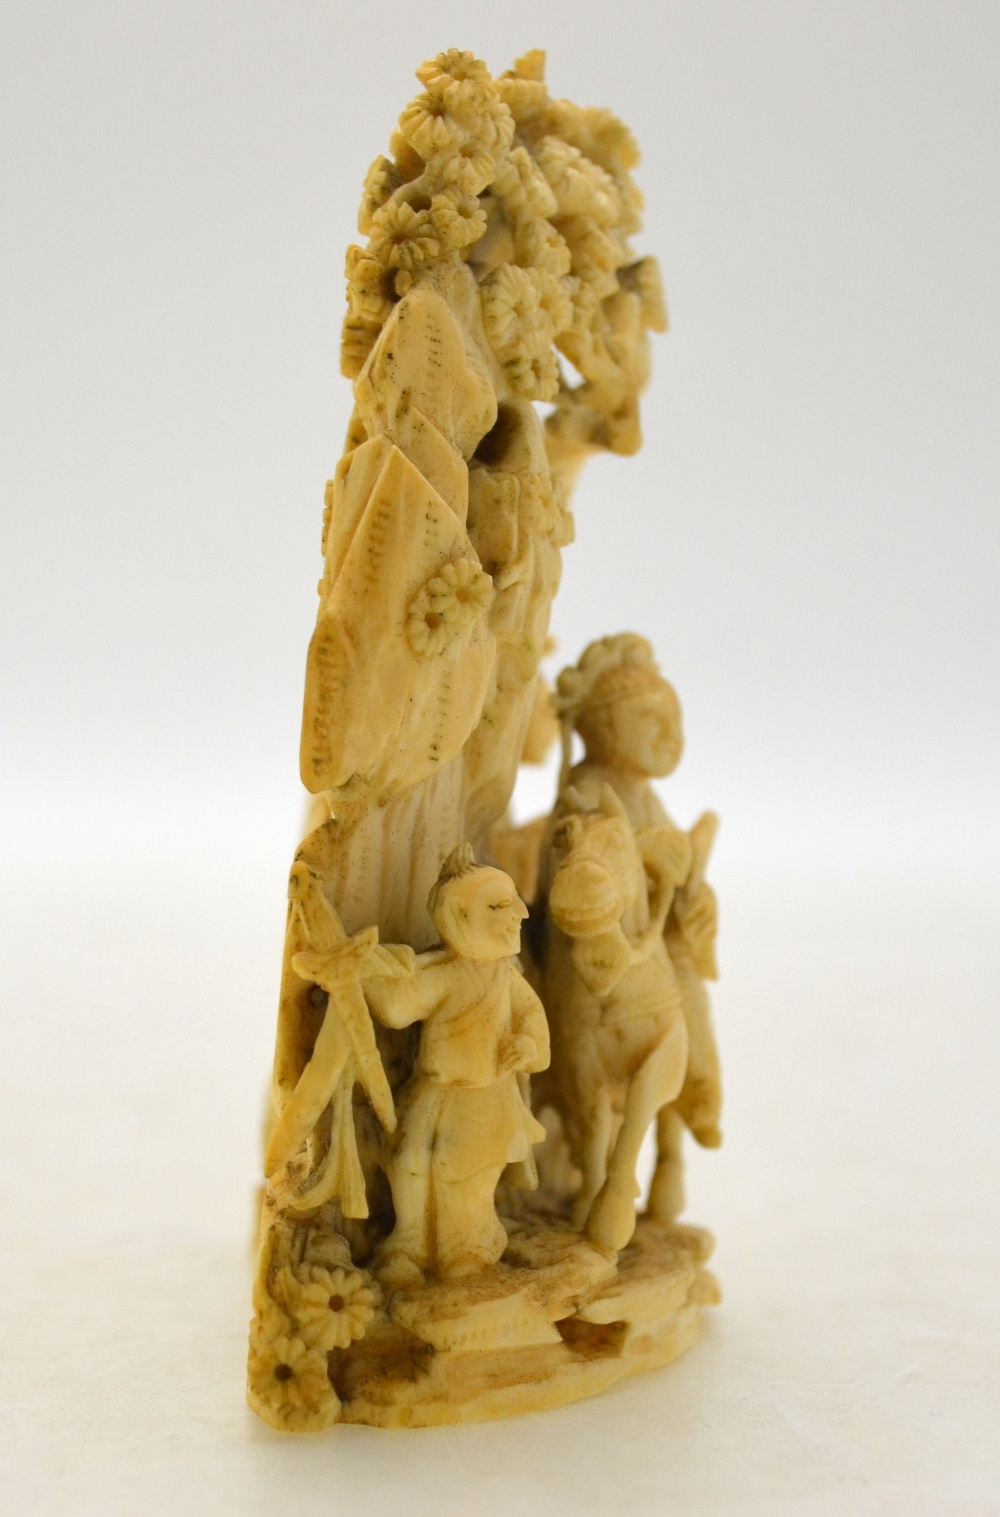 Lot 39 - A small Chinese Canton ivory carving depicting an aristocratic lady mounted on a horse on a rocky